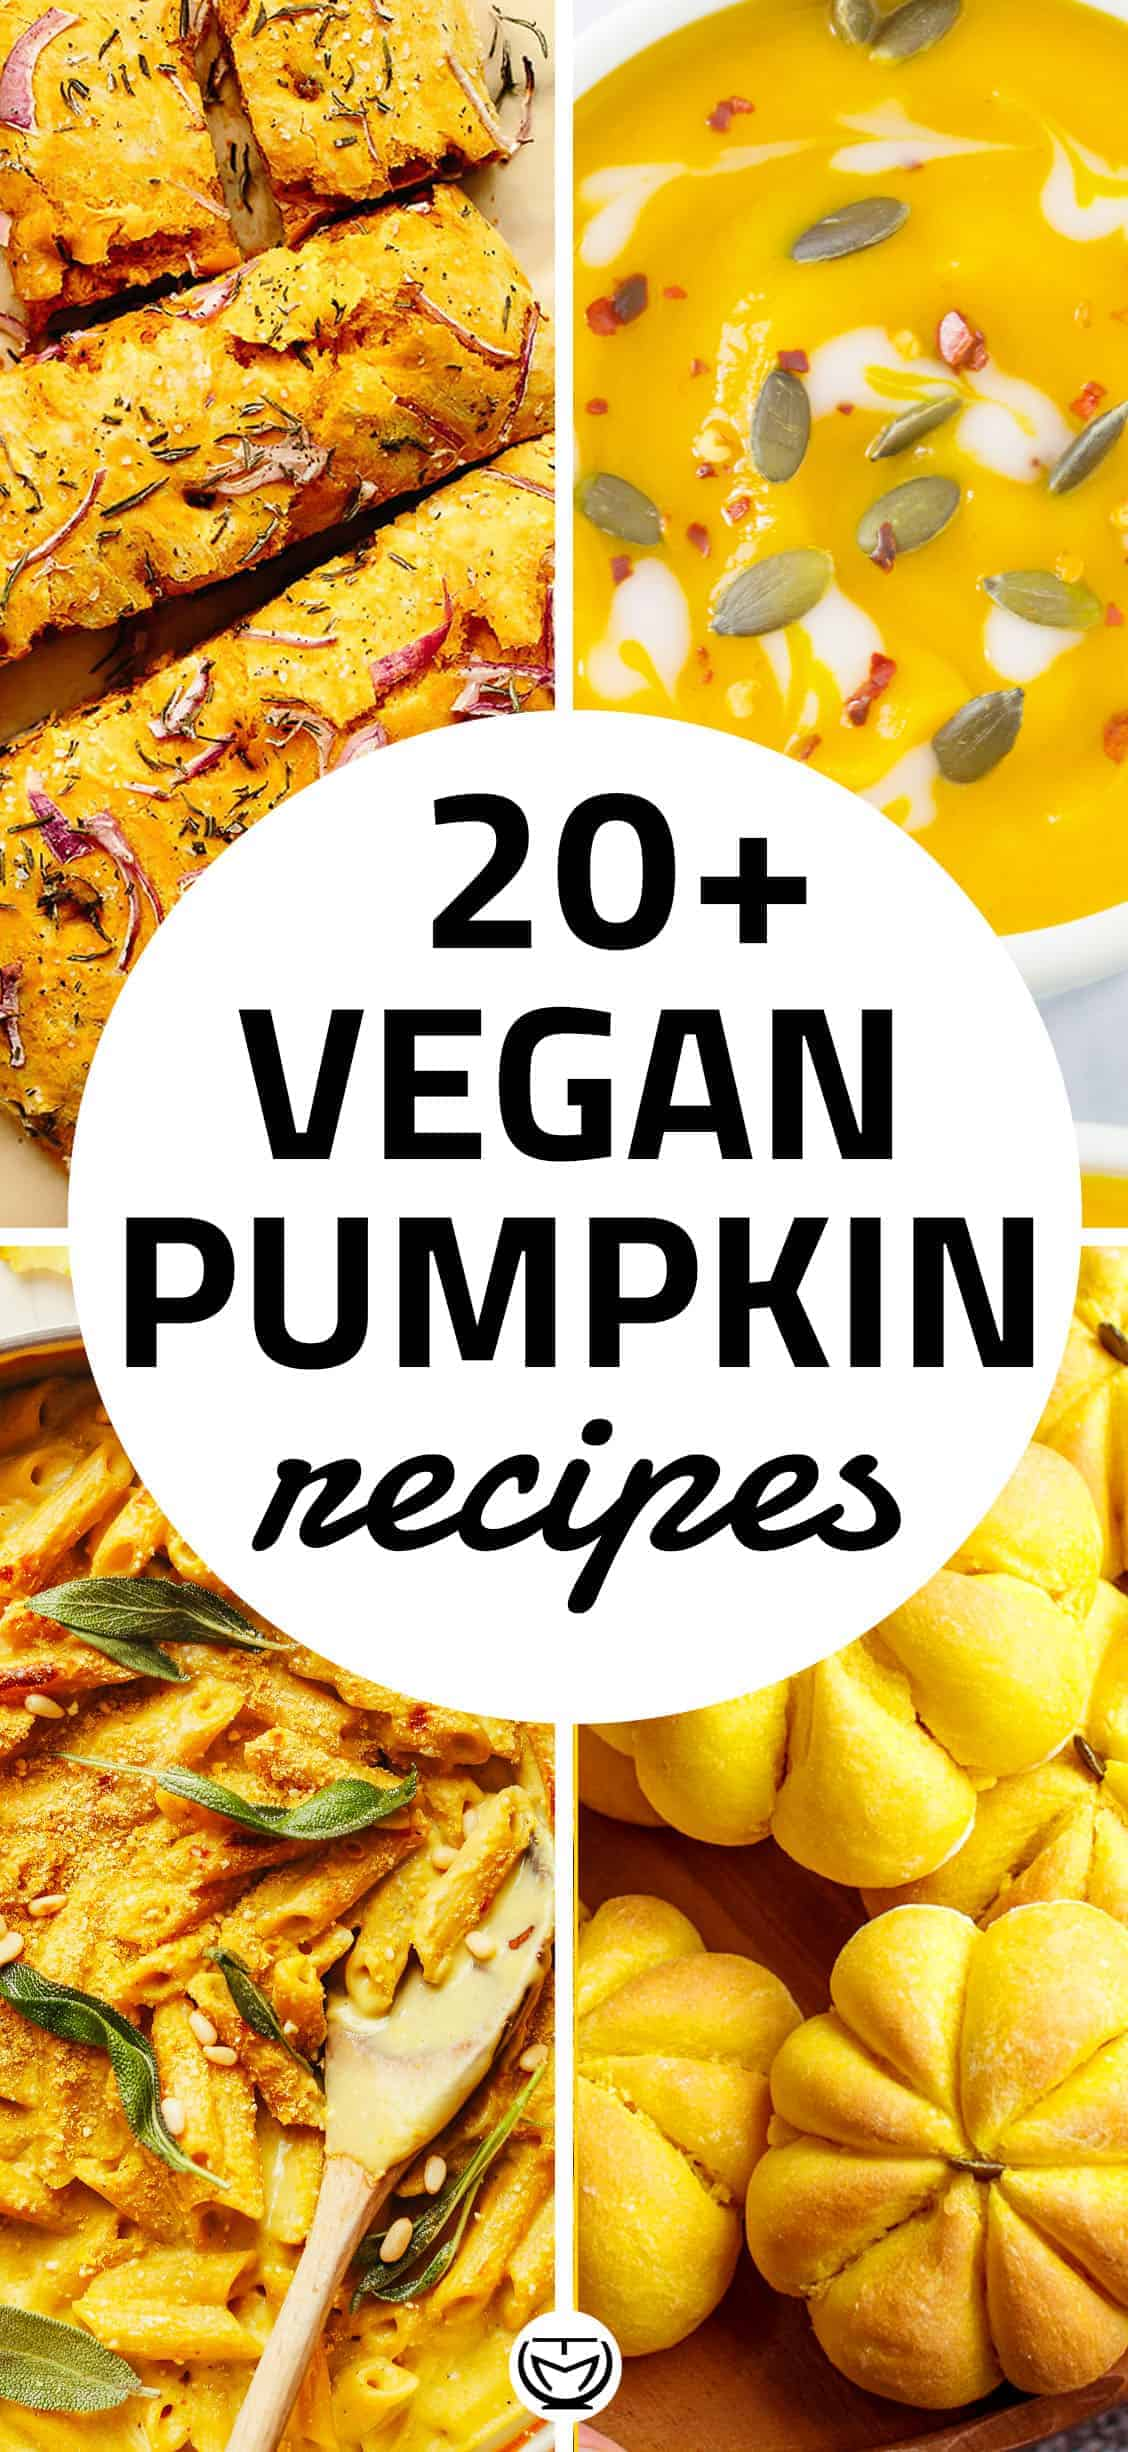 Let's celebrate the autumn with this collection of delicious vegan pumpkin recipes!